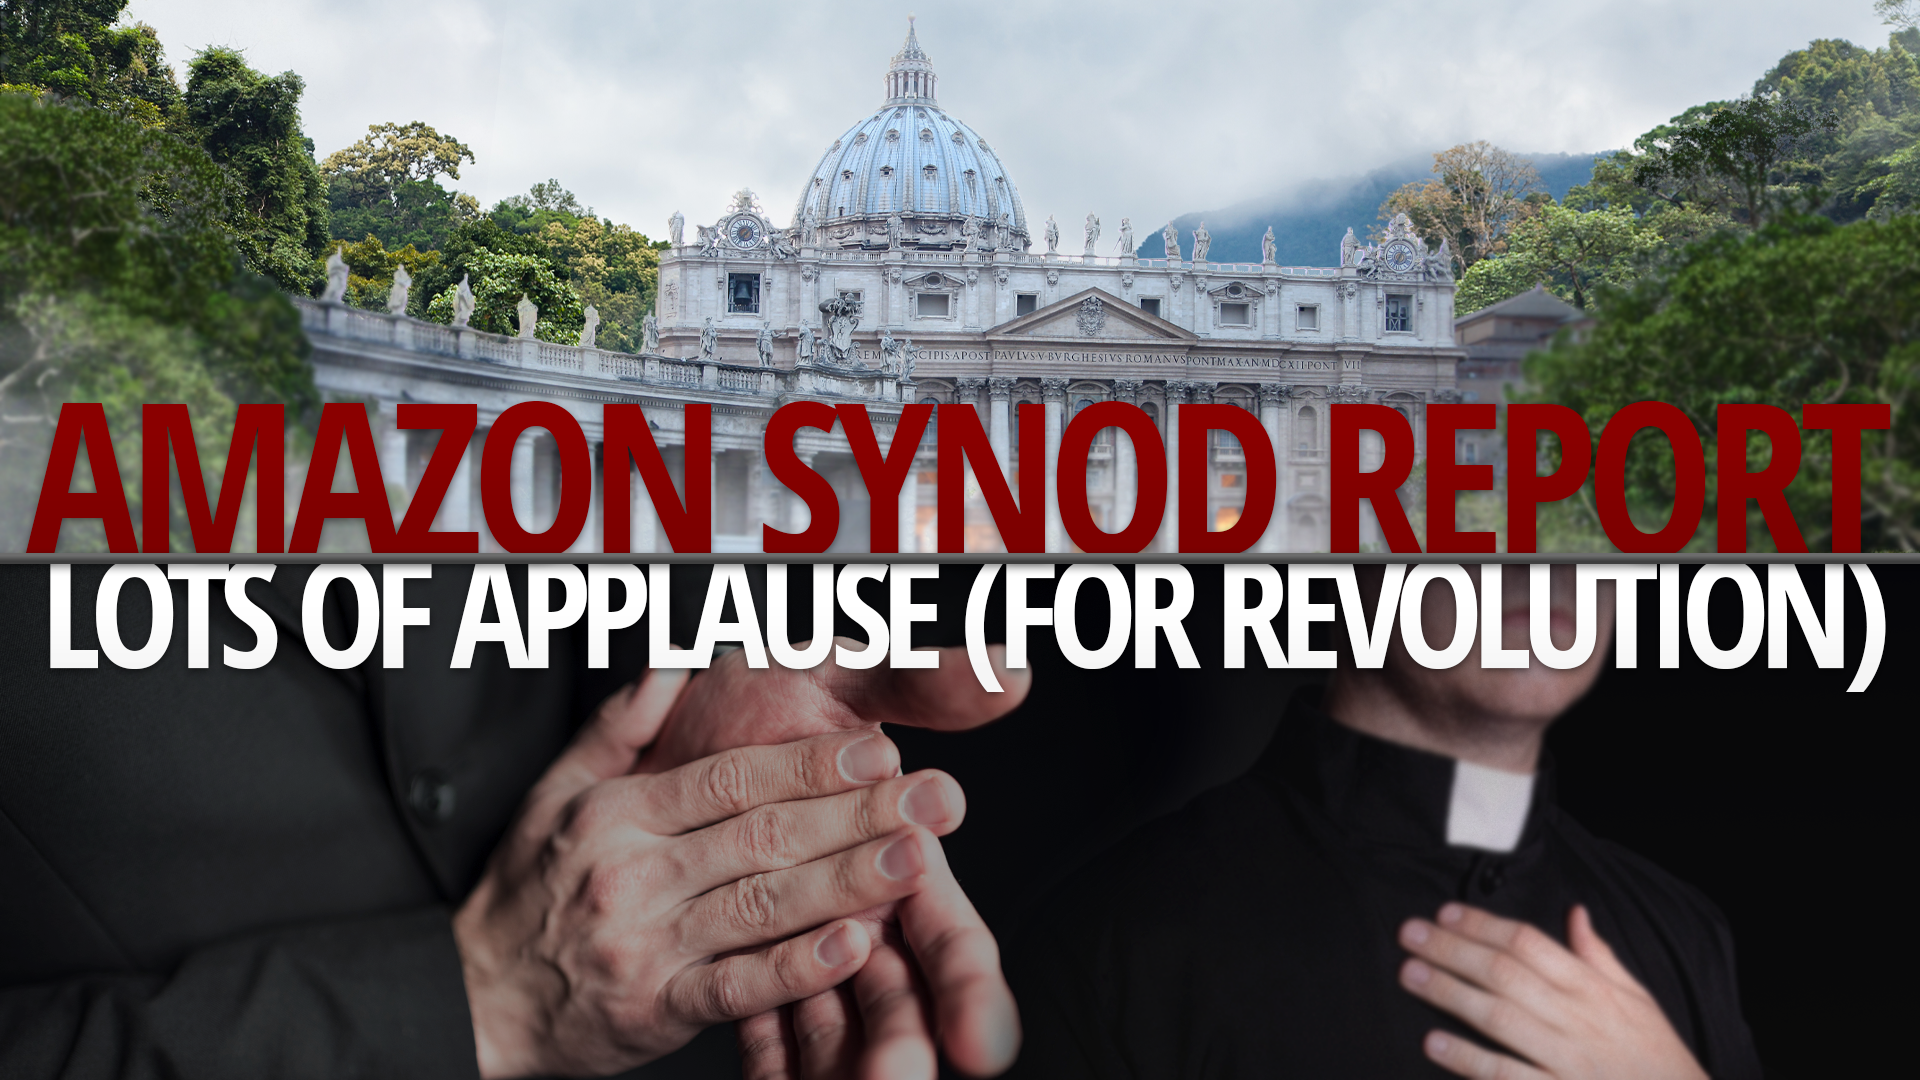 Amazon Synod Report: Lots of Applause (for Revolution)